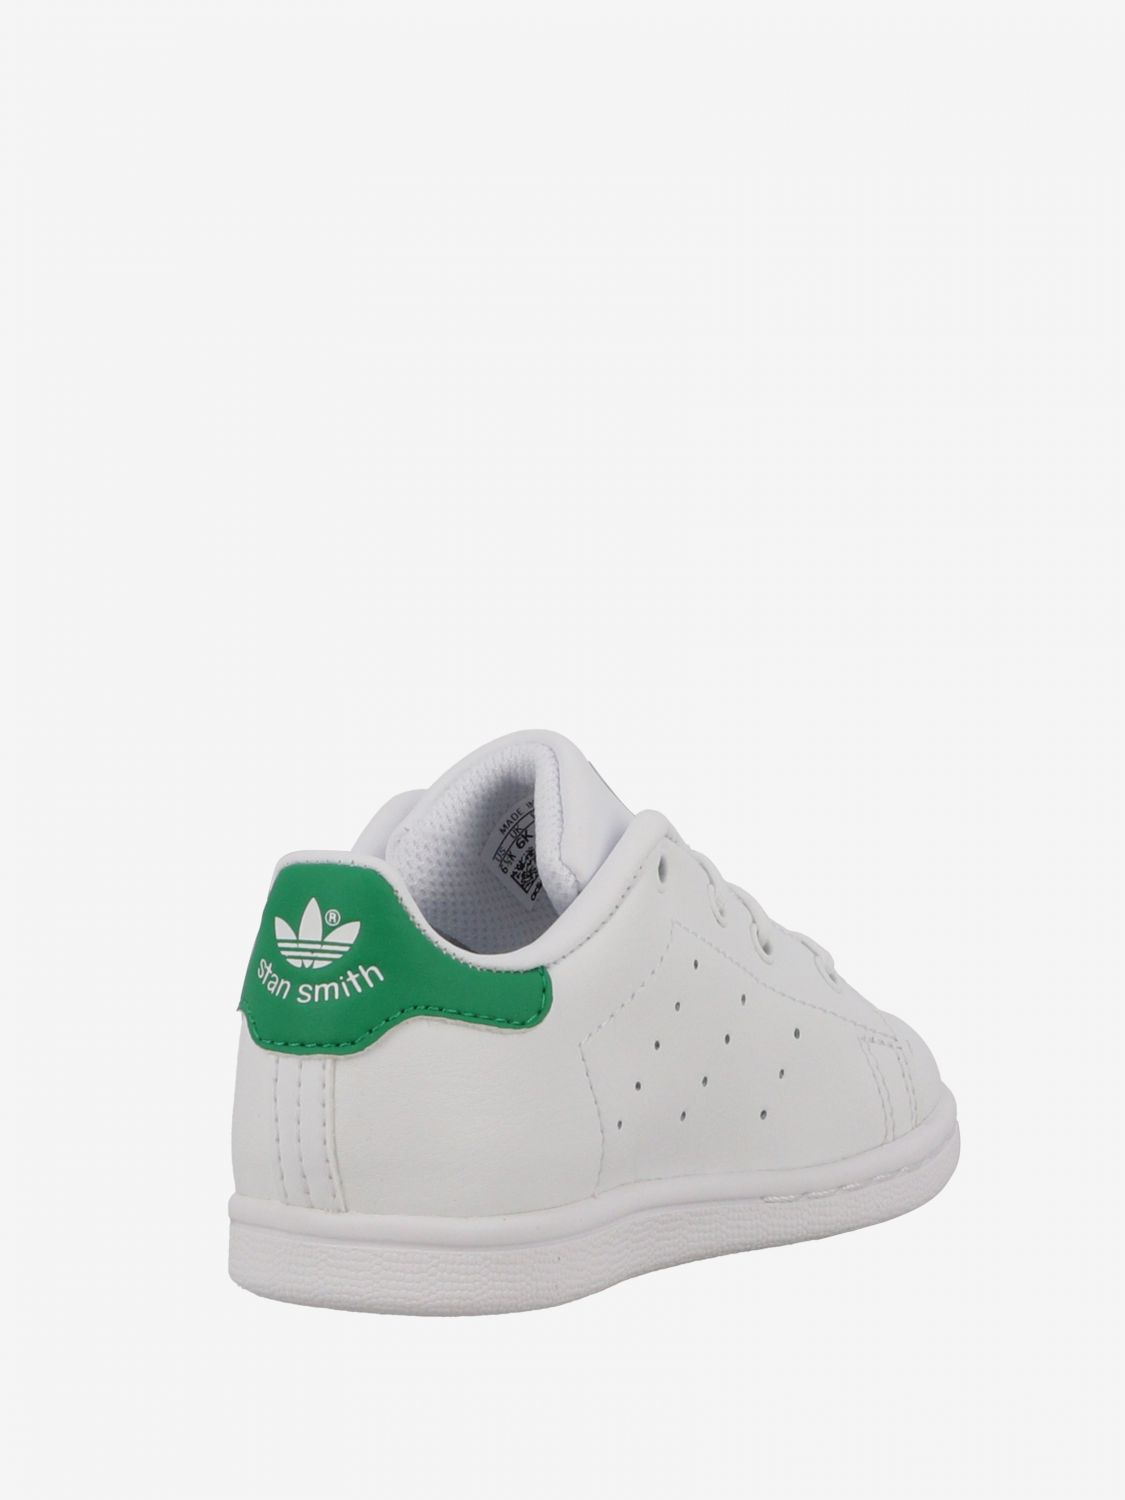 Shoes Adidas Originals: Stan smith Adidas Originals leather sneakers white 5